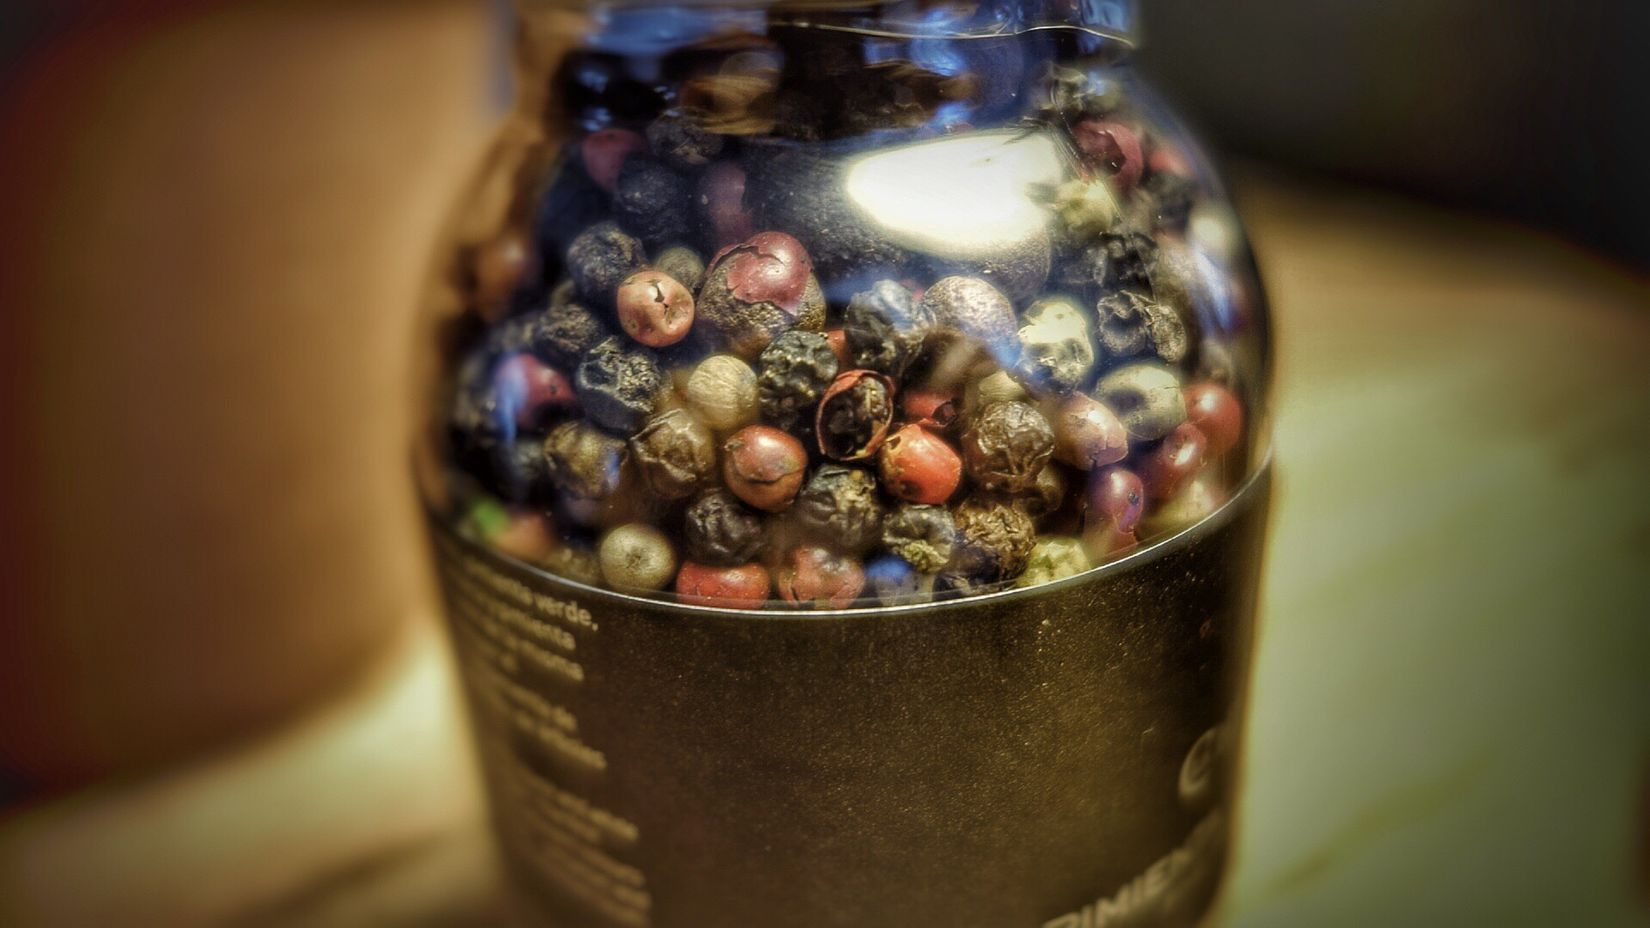 HDR Hdr_Collection Peper Product Photography Macro Macro Photography Food Tempero Grao Indoors  No People Saturation